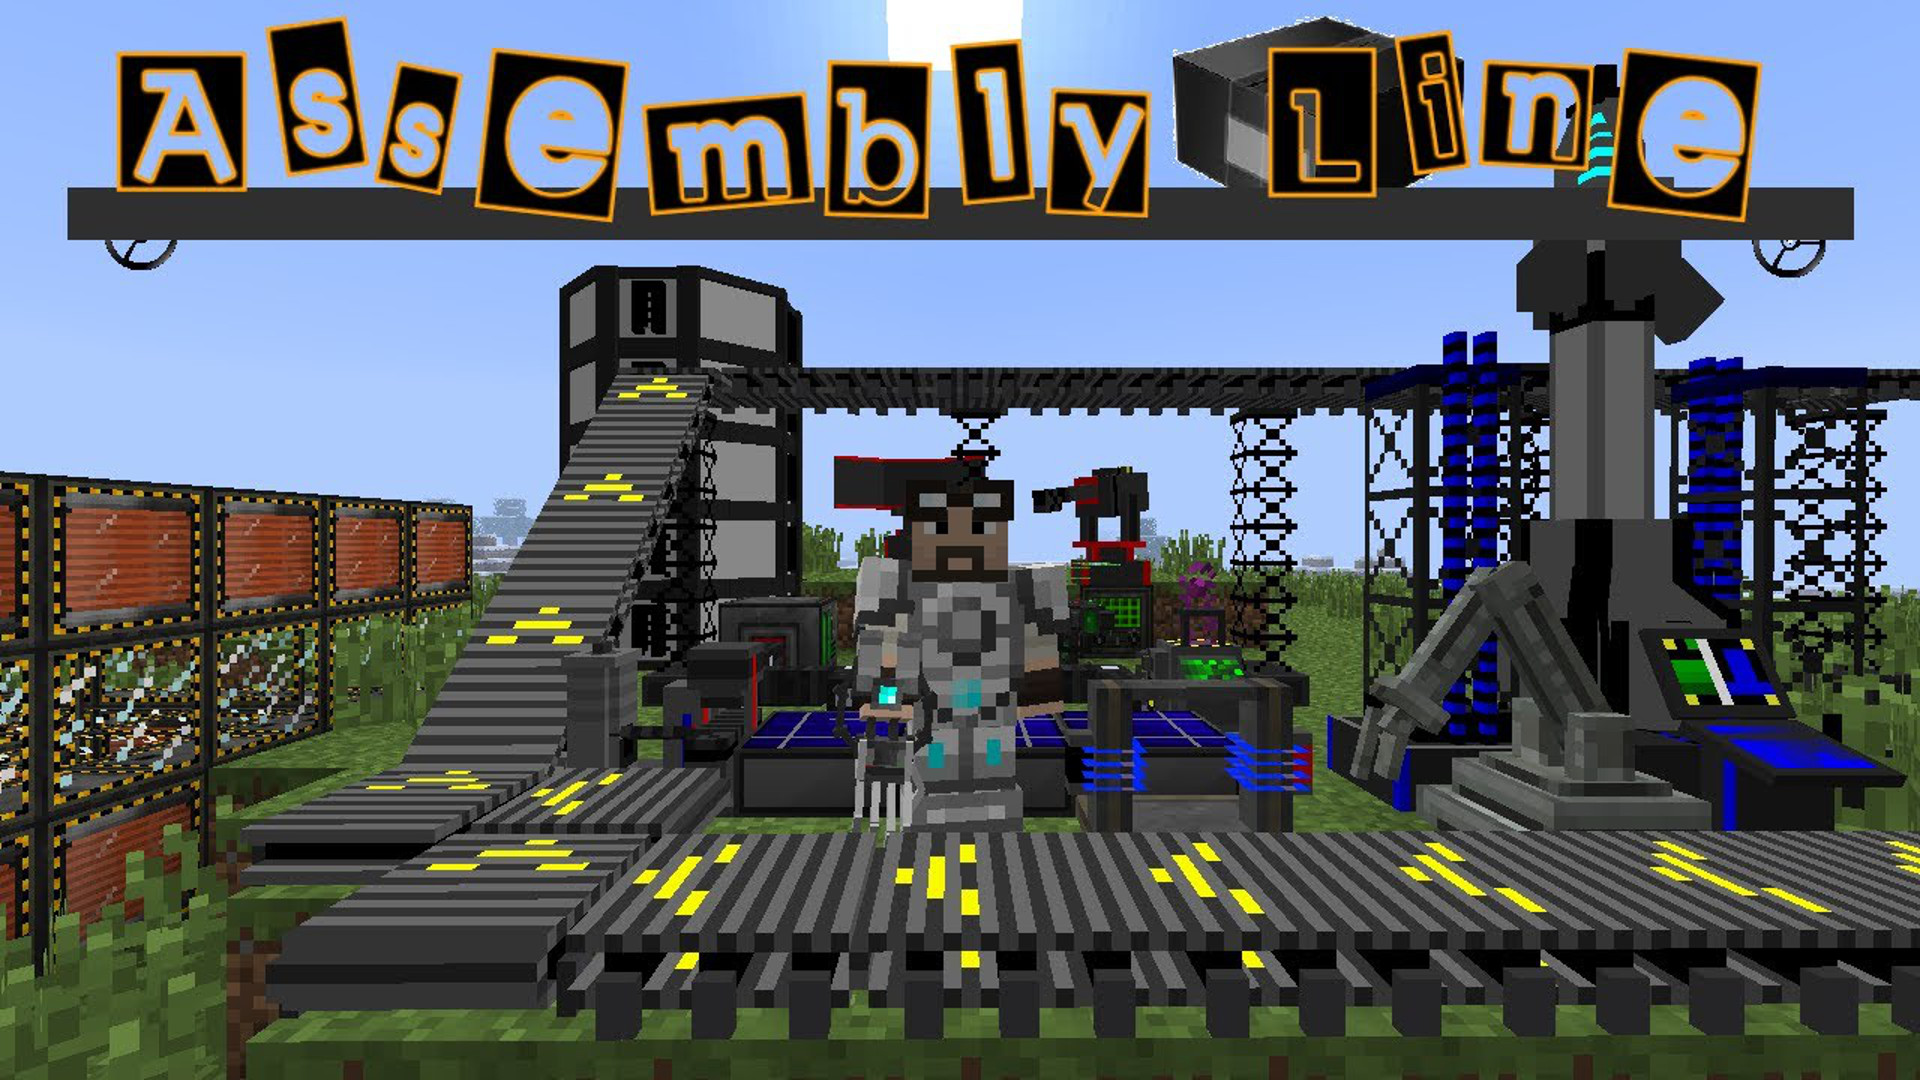 mc helicopter mod 1 5 2 with Modinfo on 224304 Mcheli Minecraft Helicopter Mod moreover Watch also Little Blocks Mod in addition E6 8F 92 E7 95 AB likewise Minecraft Helicopter Easy.